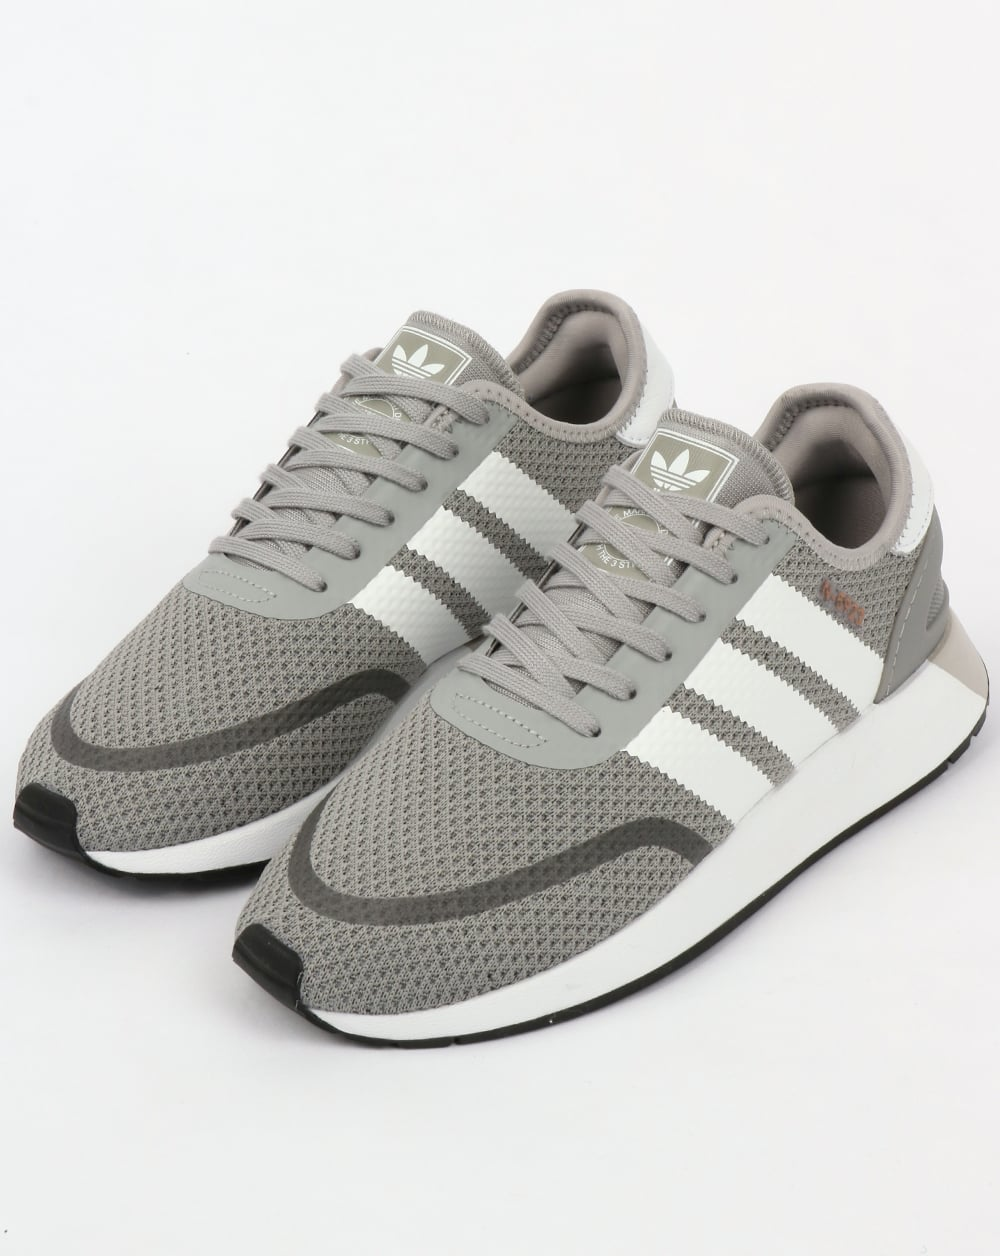 aa7031bd479 Adidas N-5923 Trainers Solid Grey White